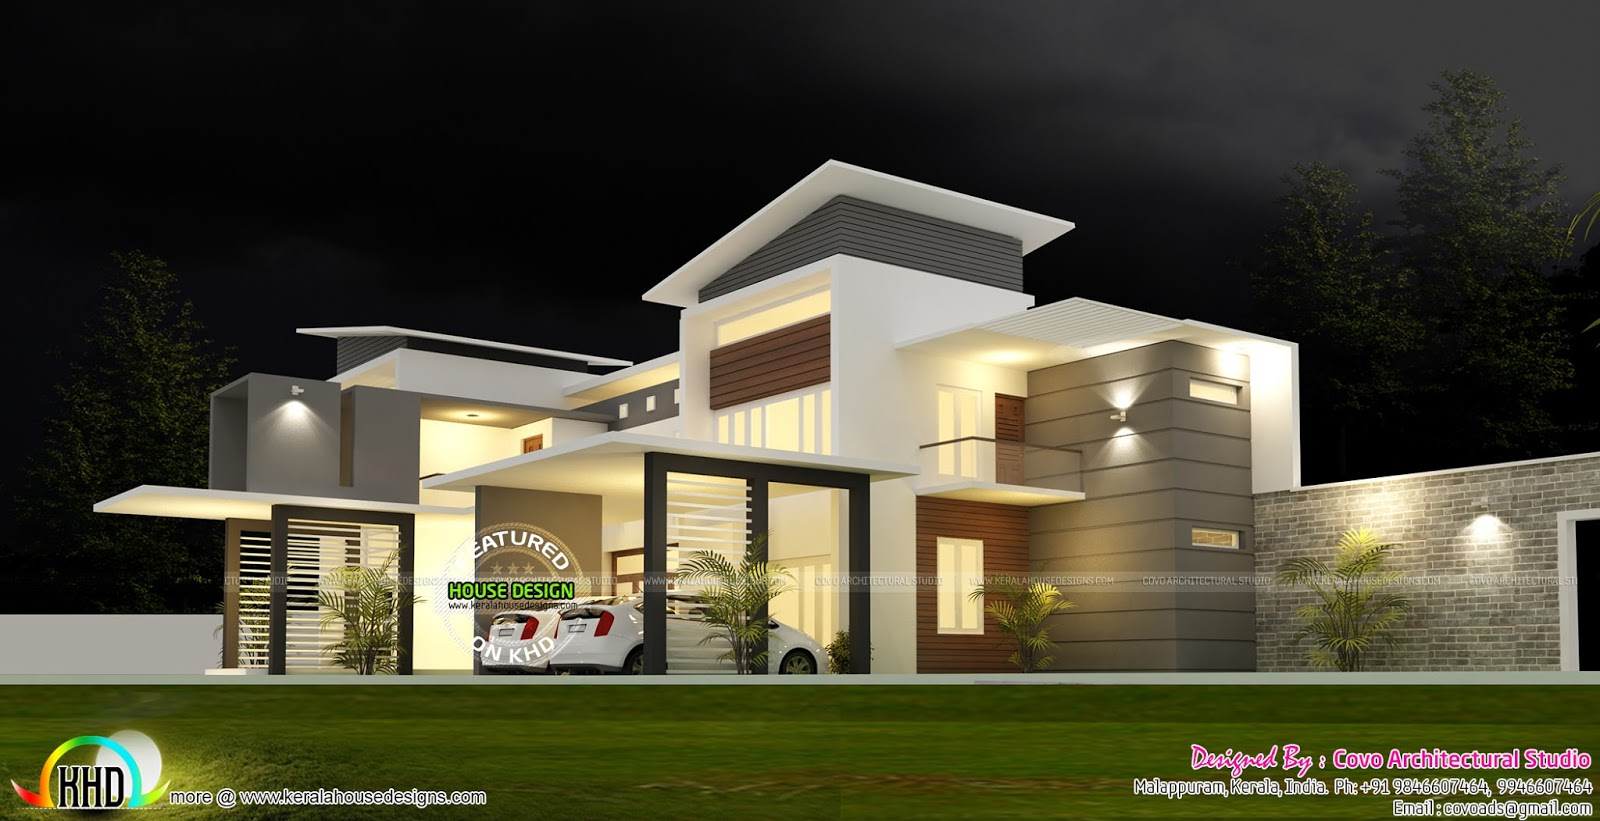 5 bedroom modern contemporary house kerala home design bloglovin - Contemporary modern home design ideas with decor ...